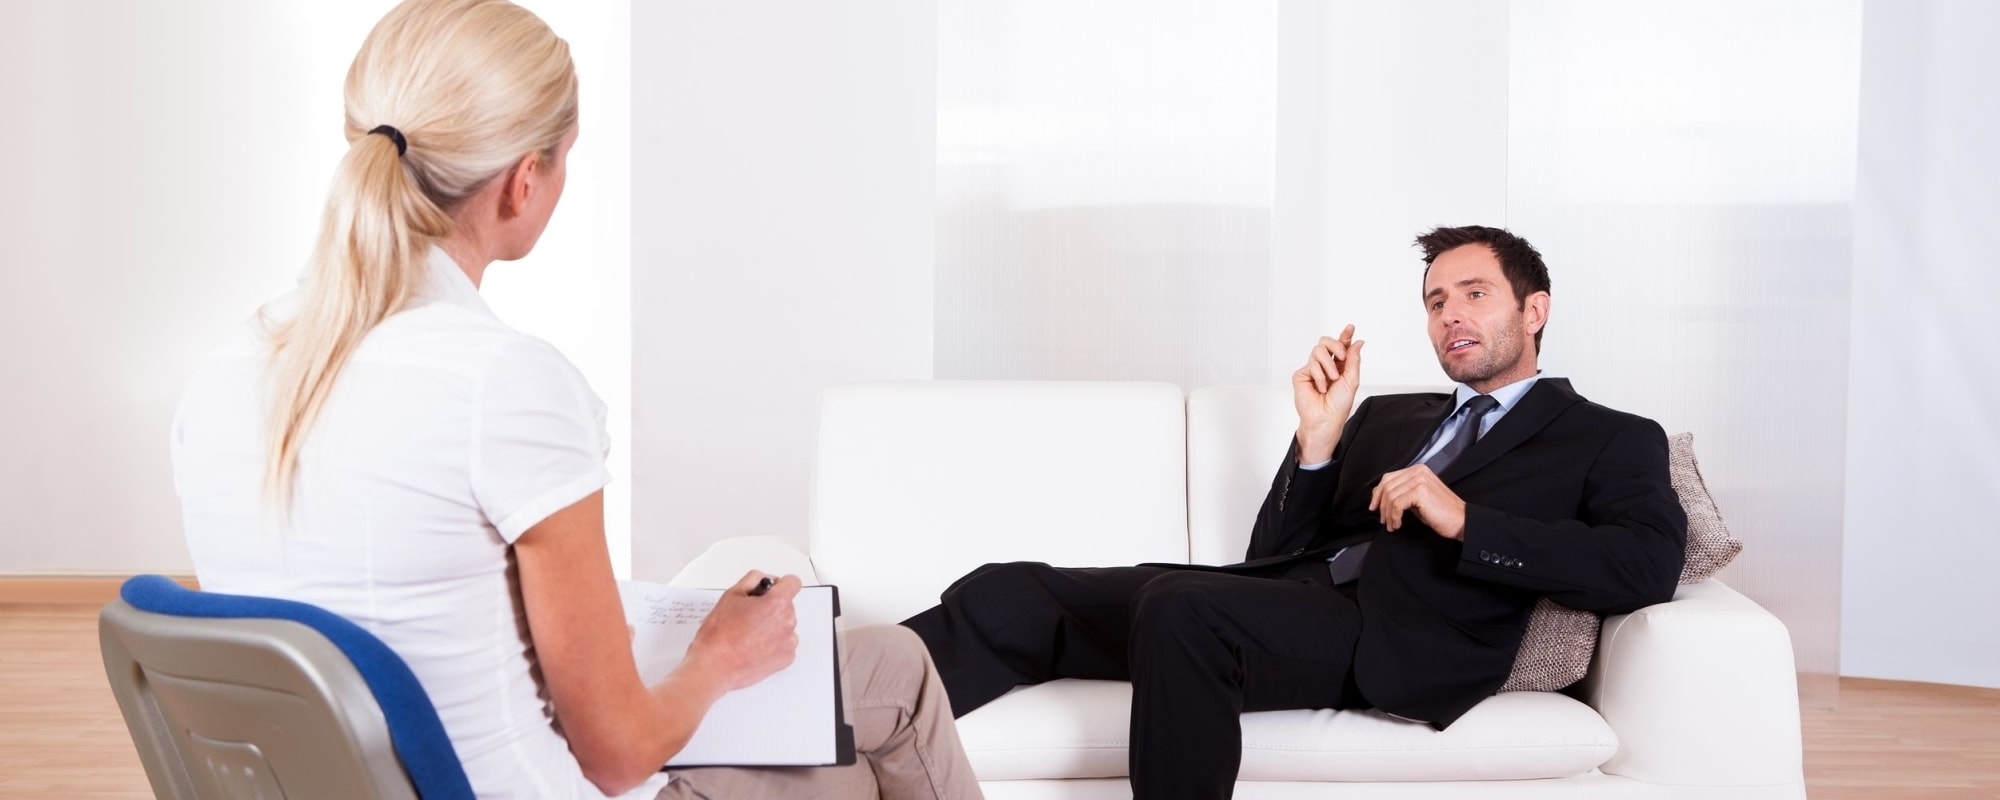 counseling methods used in substance abuse treatment Look for programs using research-validated techniques, like cognitive behavioral therapy, which helps addicts recognize what prompts them to use drugs or alcohol, and learn to redirect their thoughts and reactions away from the abused substance.